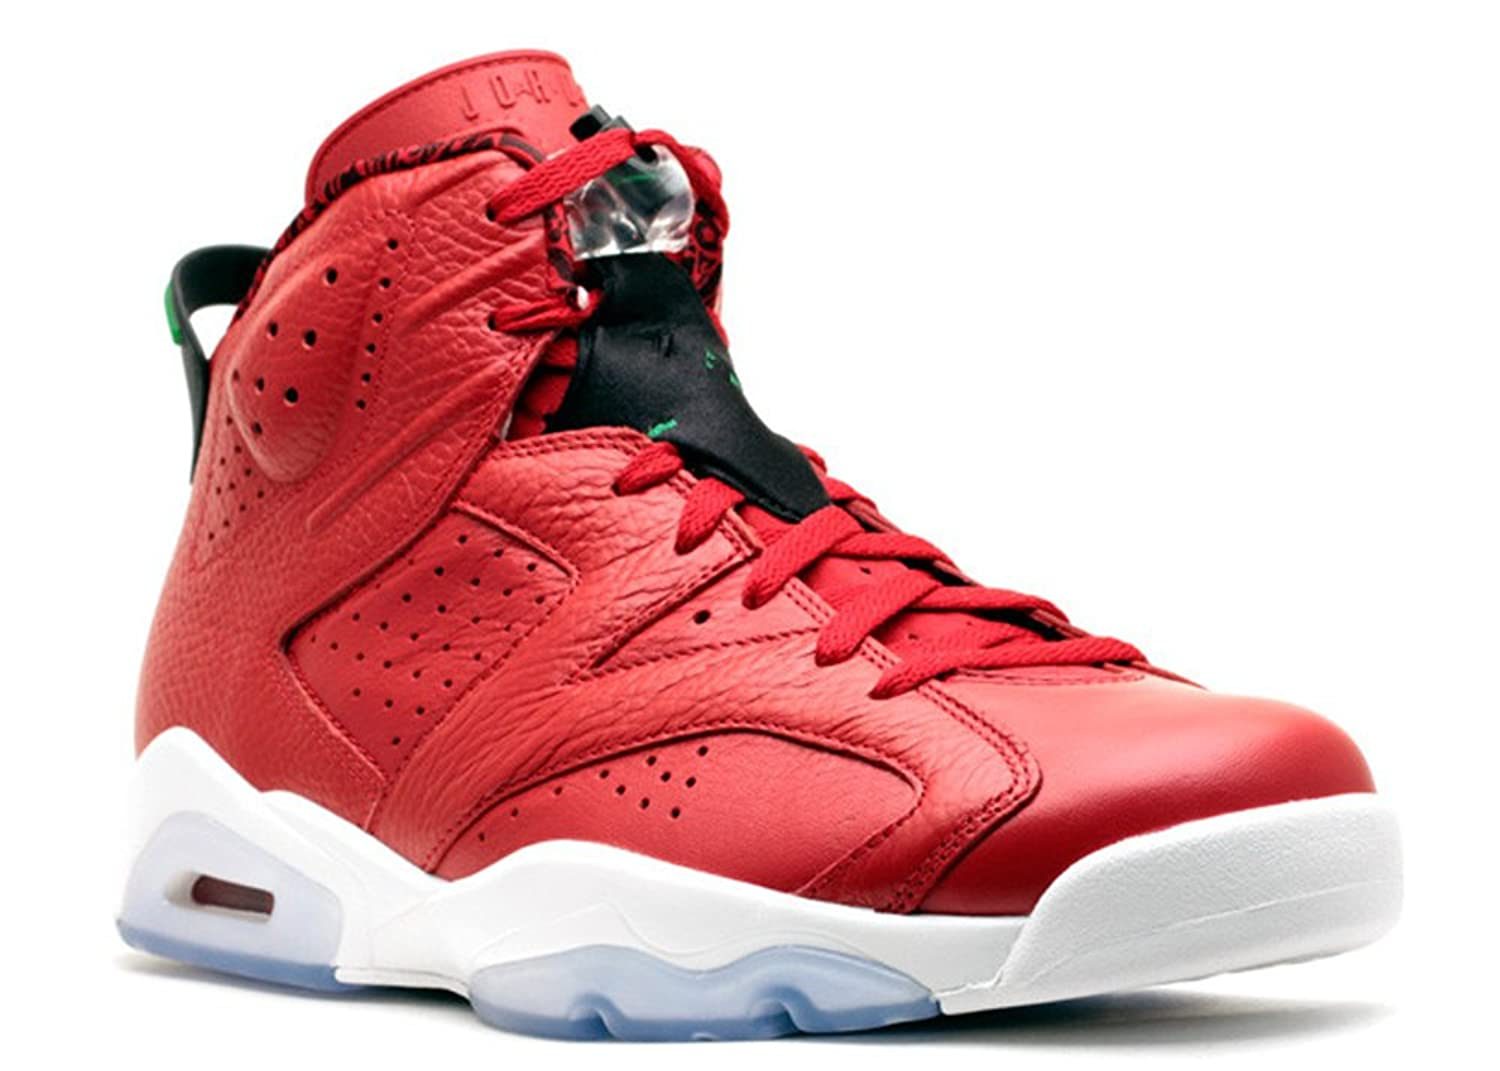 becca wilson Man comfortable sport basketball shoes Air Jordan 6 spizike  history of Jordan varsity Red